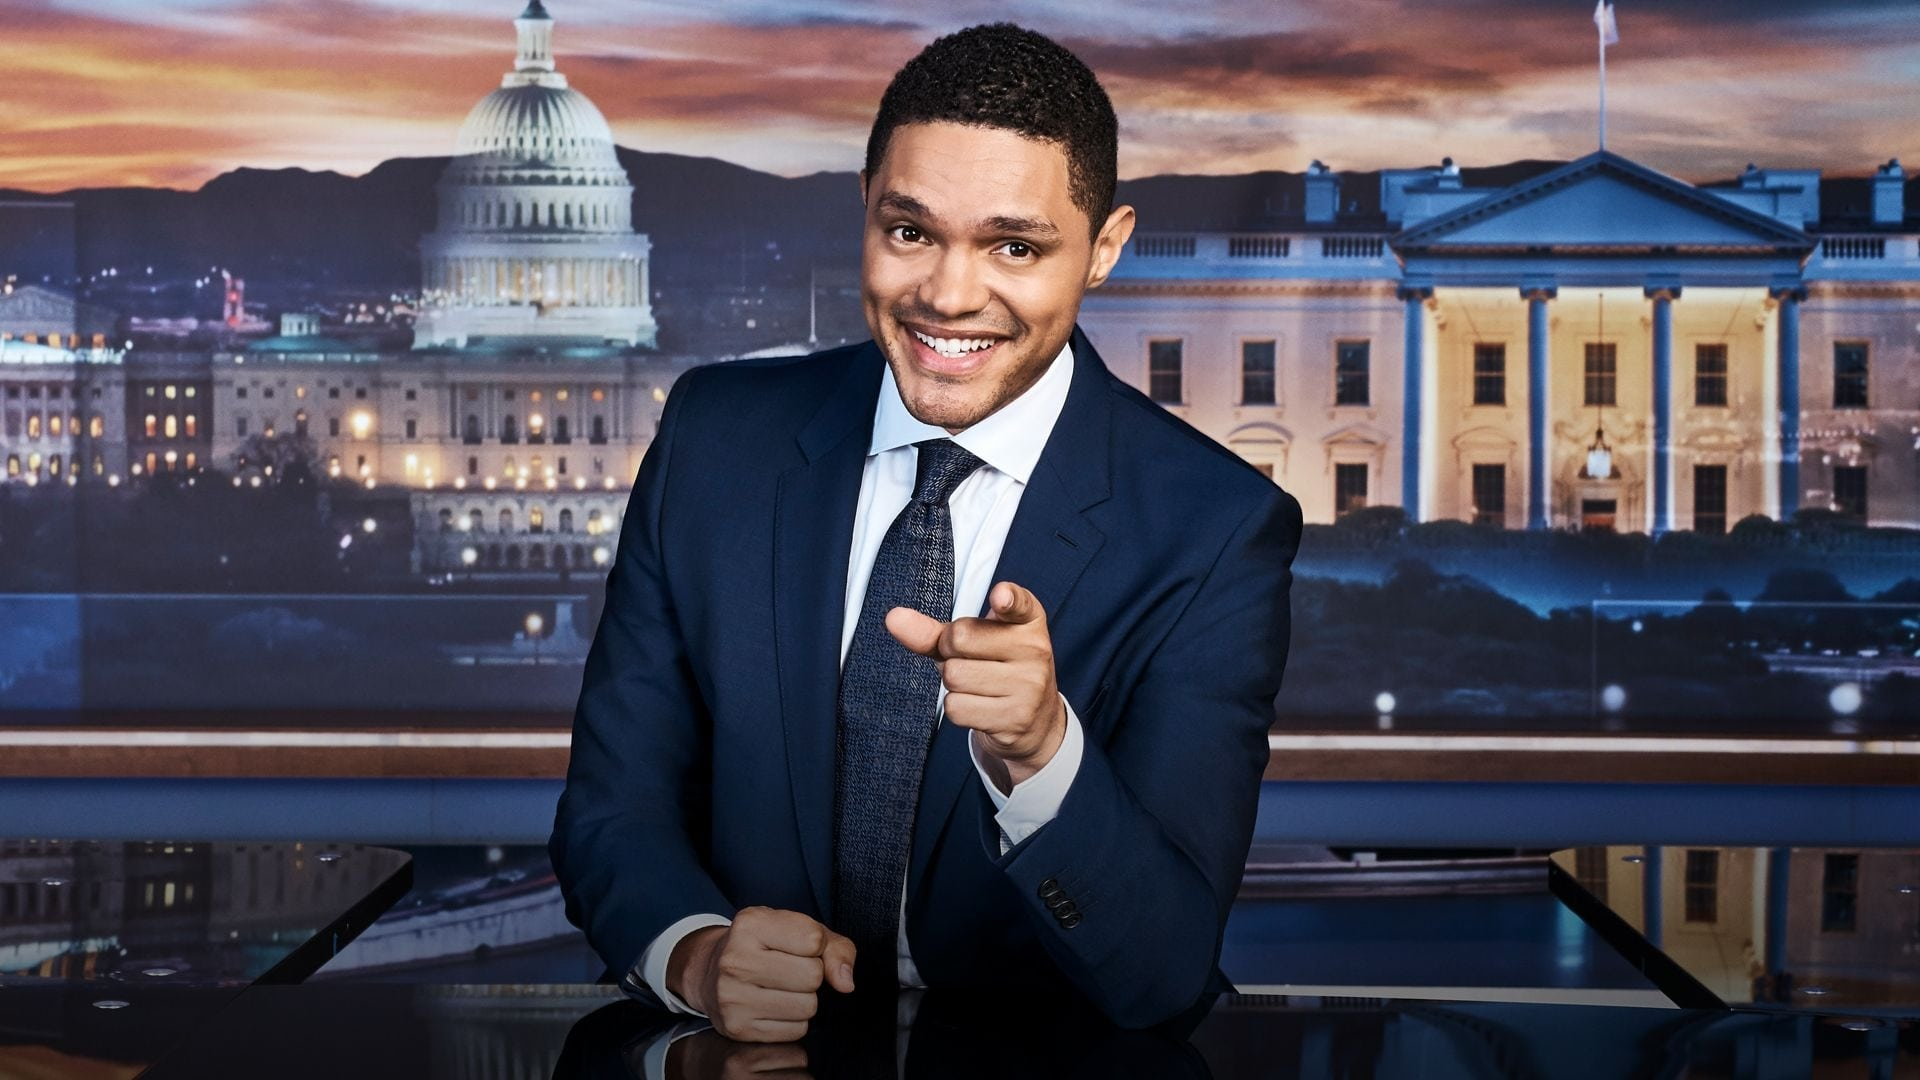 The Daily Show with Trevor Noah - Season 14 Episode 153 : Wed, Dec 2, 2009 (1970)